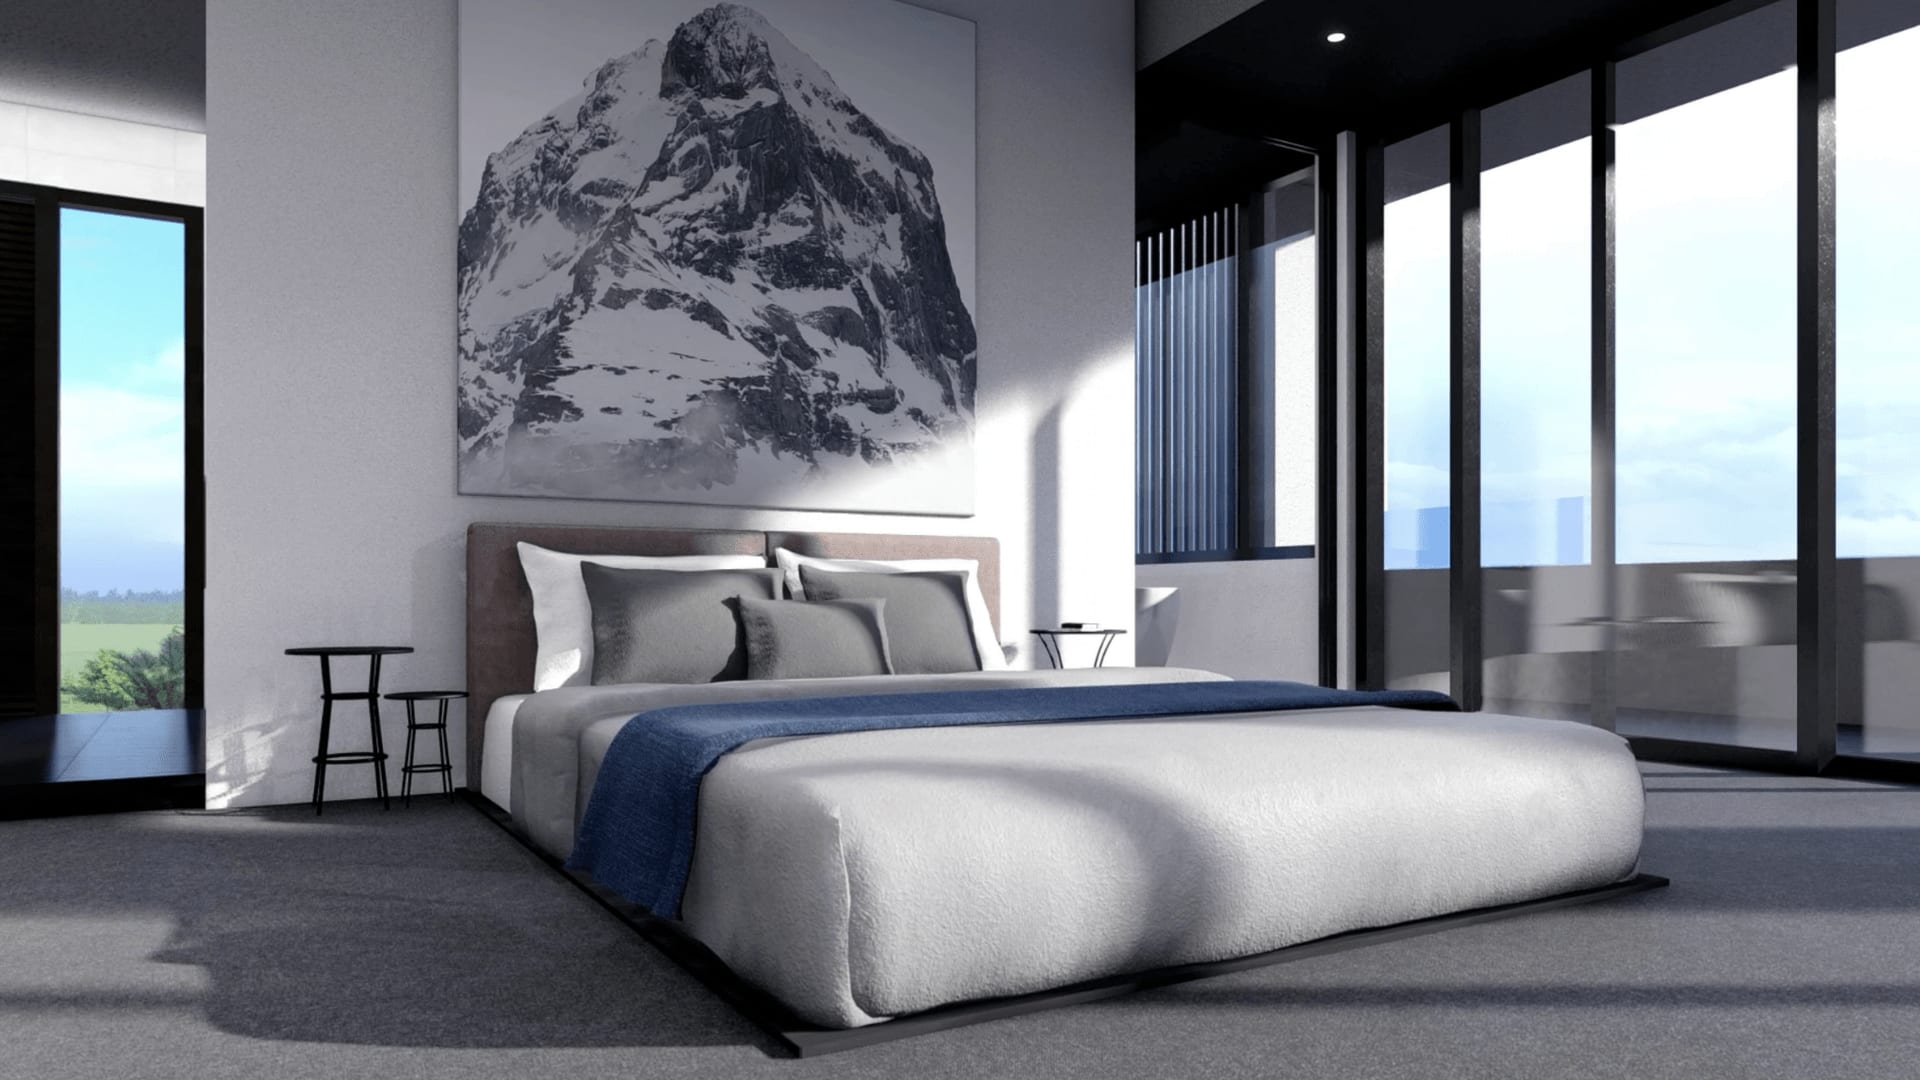 Photorealistic 3d Render of Architecturally Designed Home Bedroom from The Sanctuary Project (High Def)